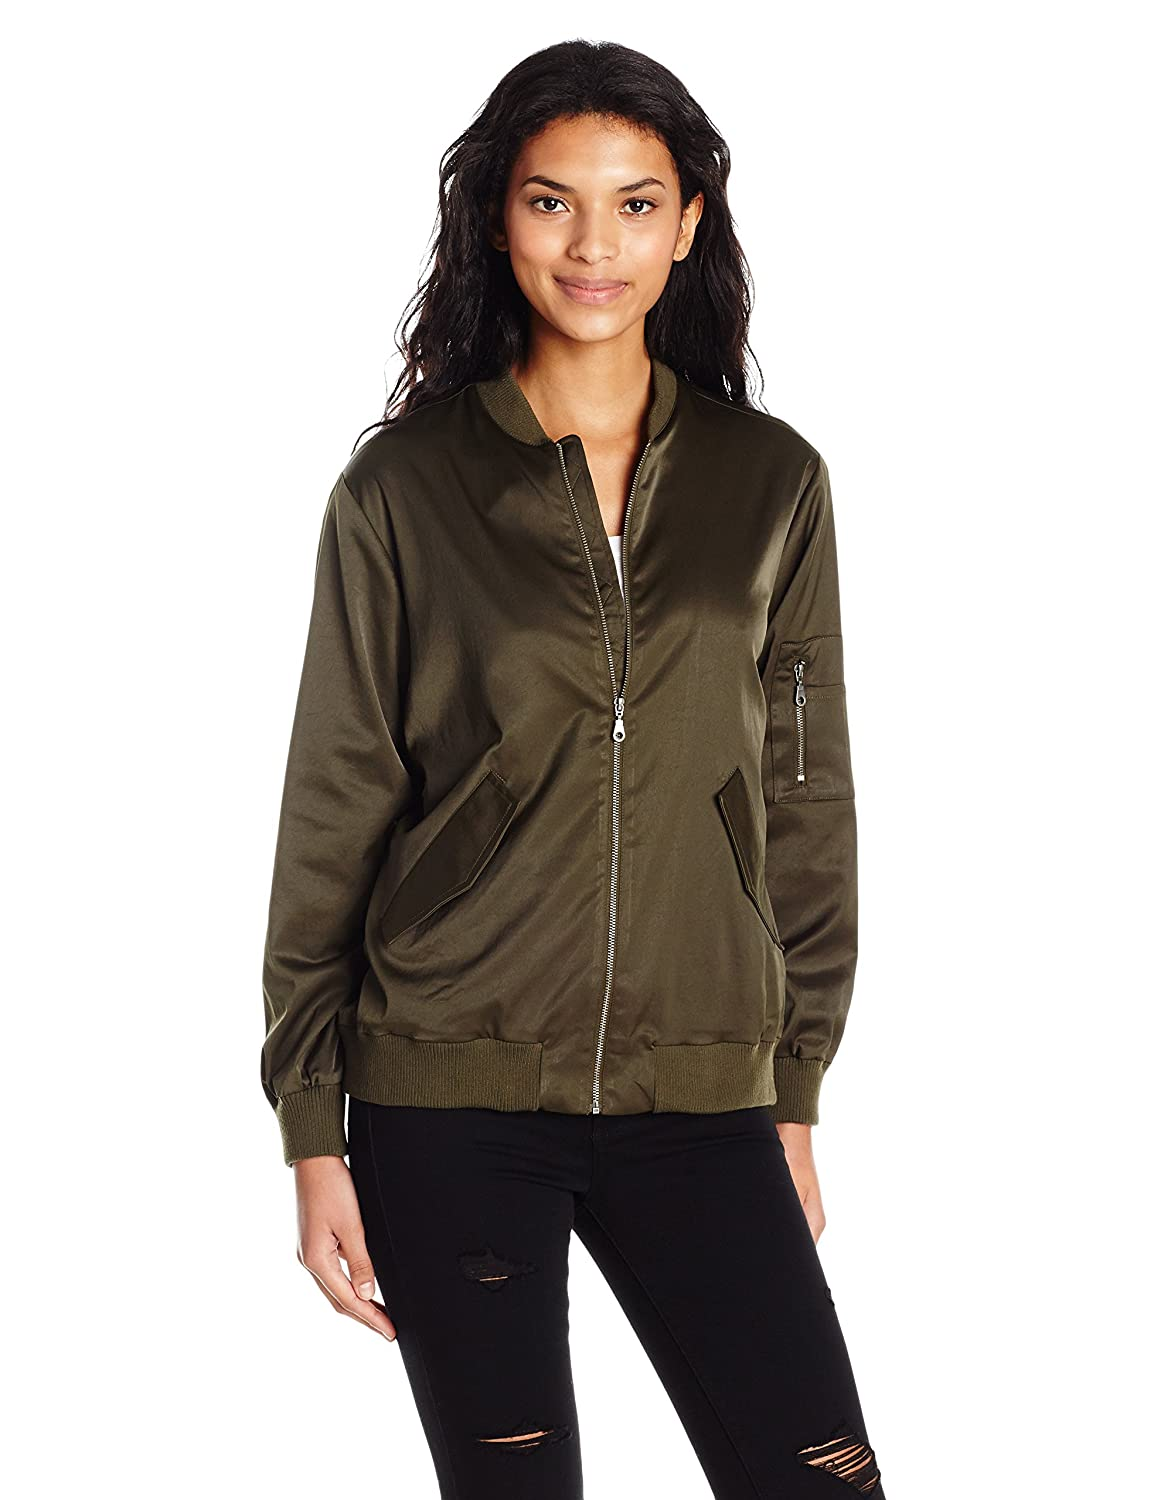 David Lerner Women's Bomber Jacket DAJ0116